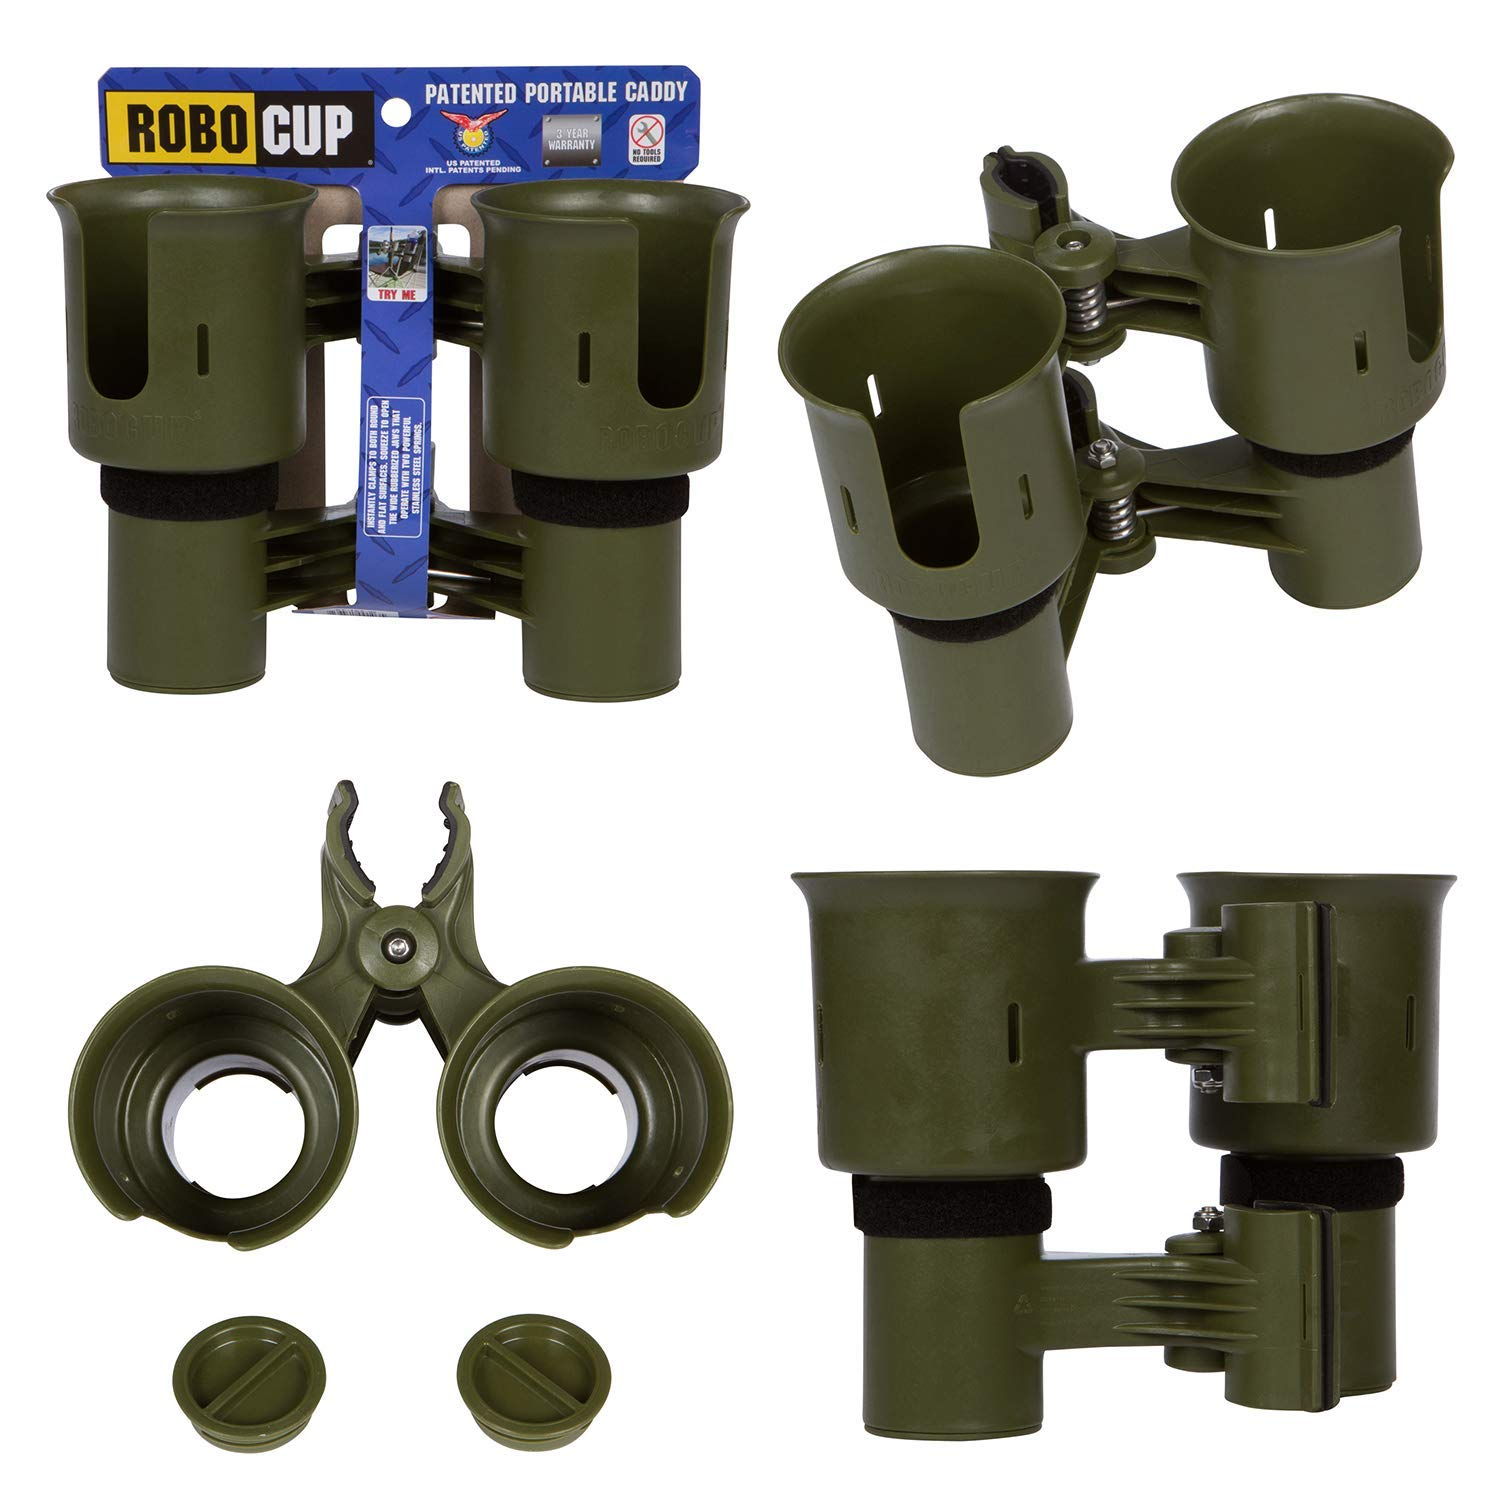 ROBOCUP, Olive, Updated Version, Best Cup Holder for Drinks, Fishing Rod/Pole, Boat, Beach Chair/Golf Cart/Wheelchair/Walker/Drum Sticks by ROBOCUP